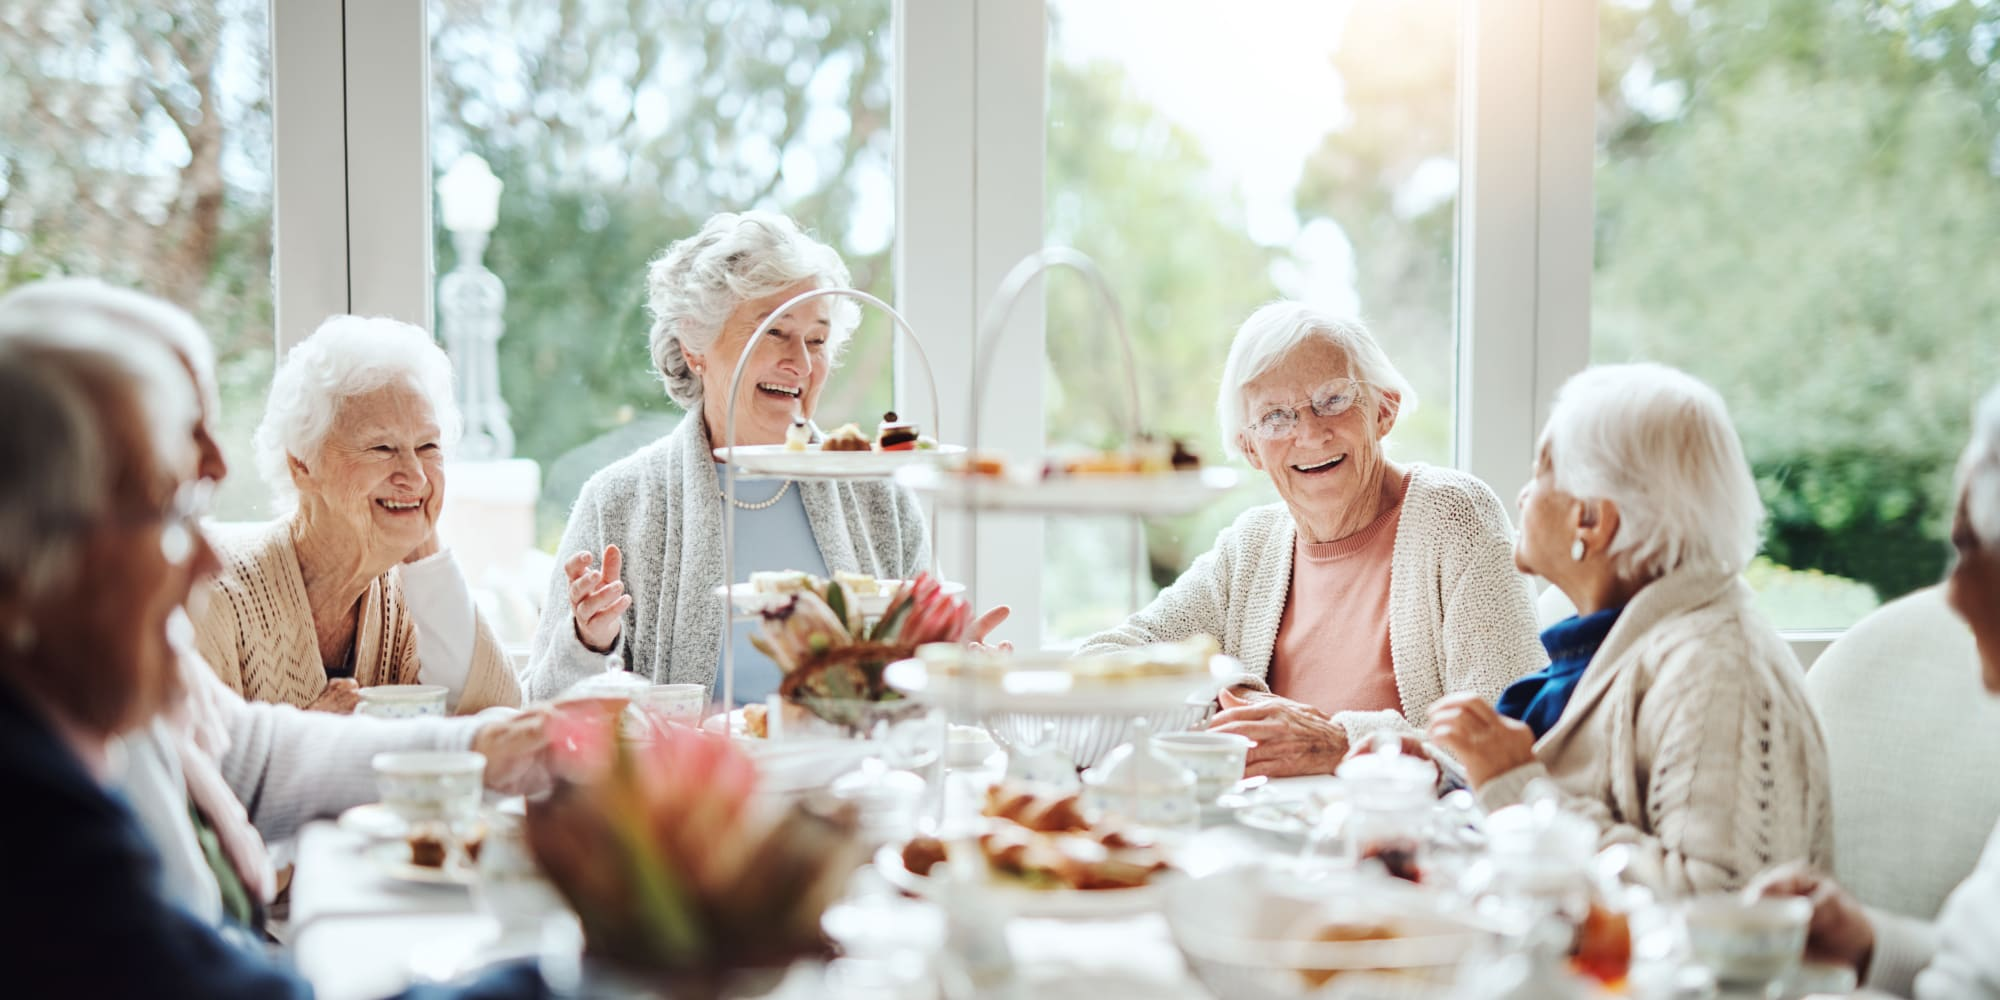 Services & Amenities at Avenir Memory Care Westside in Los Angeles, California.